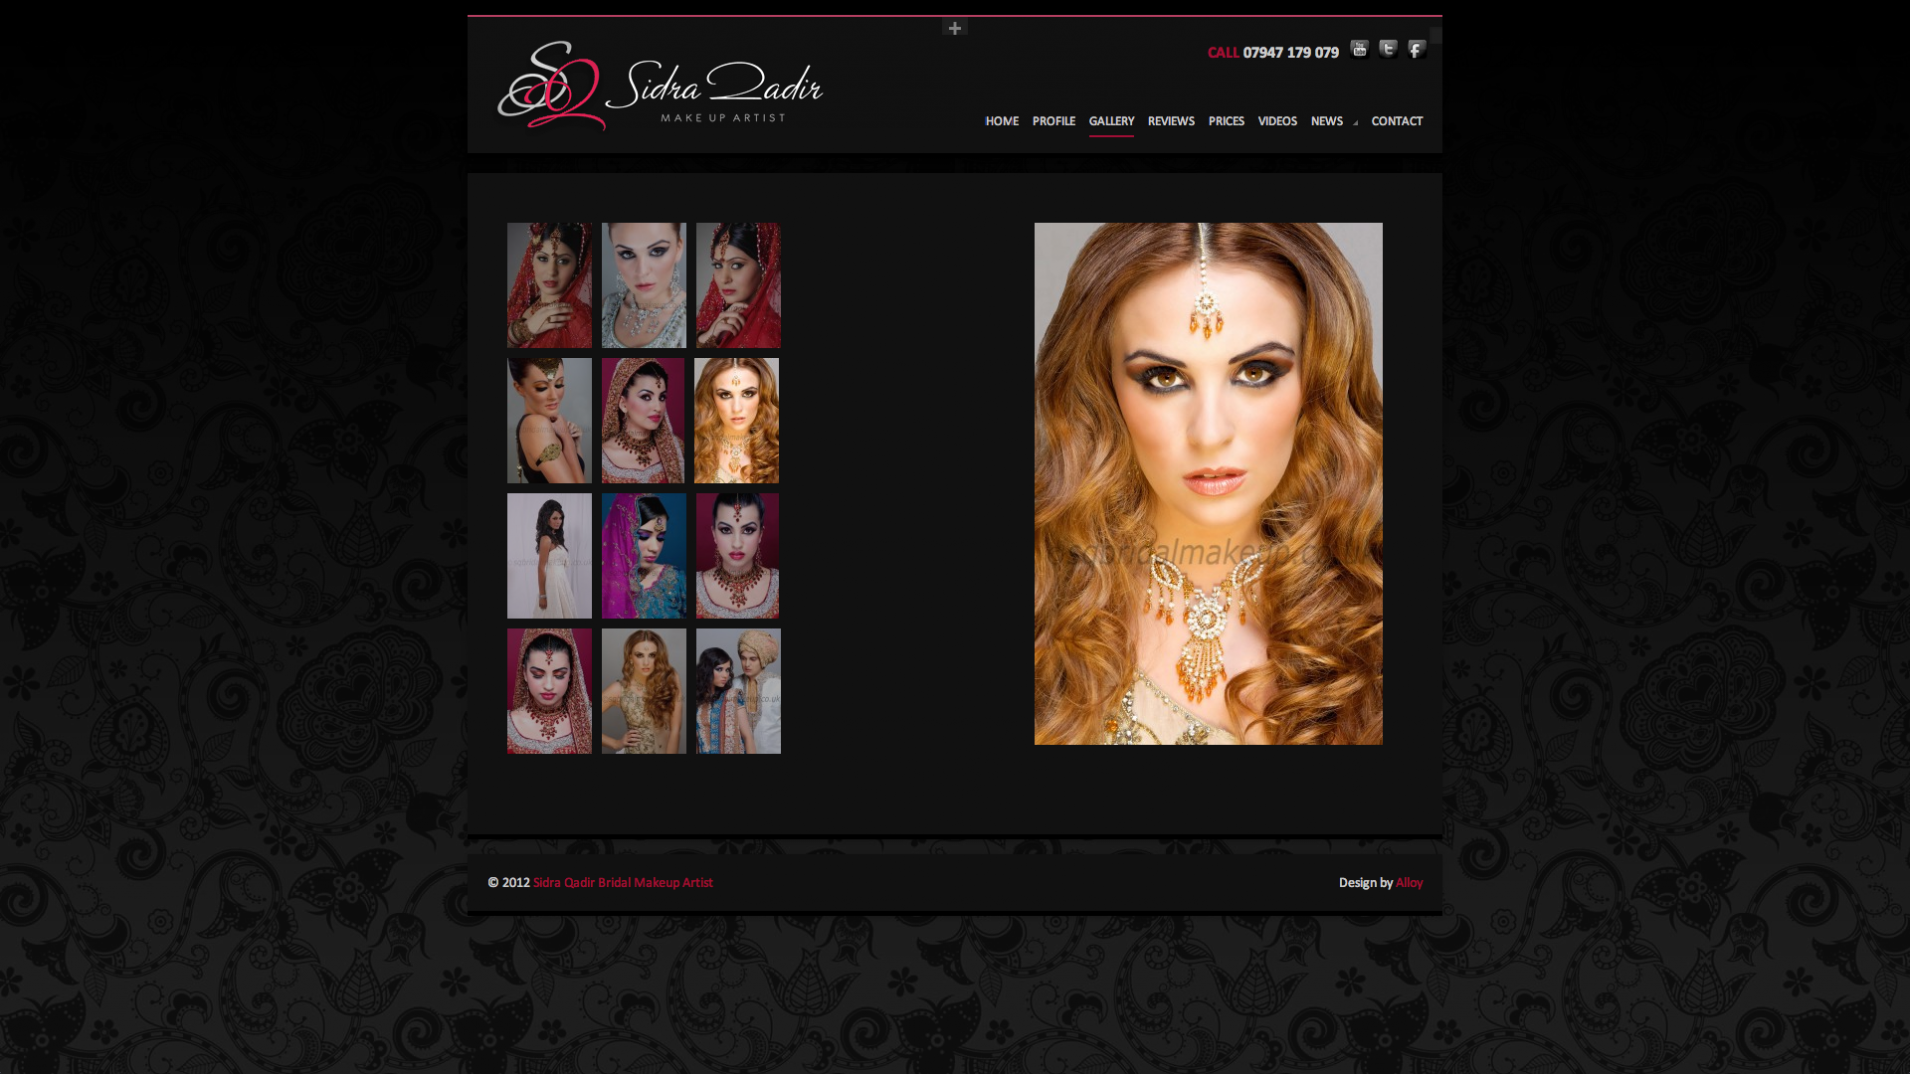 Screen Shot 2013 12 23 at 16.34.58 - Website design for professional UK Makeup artist